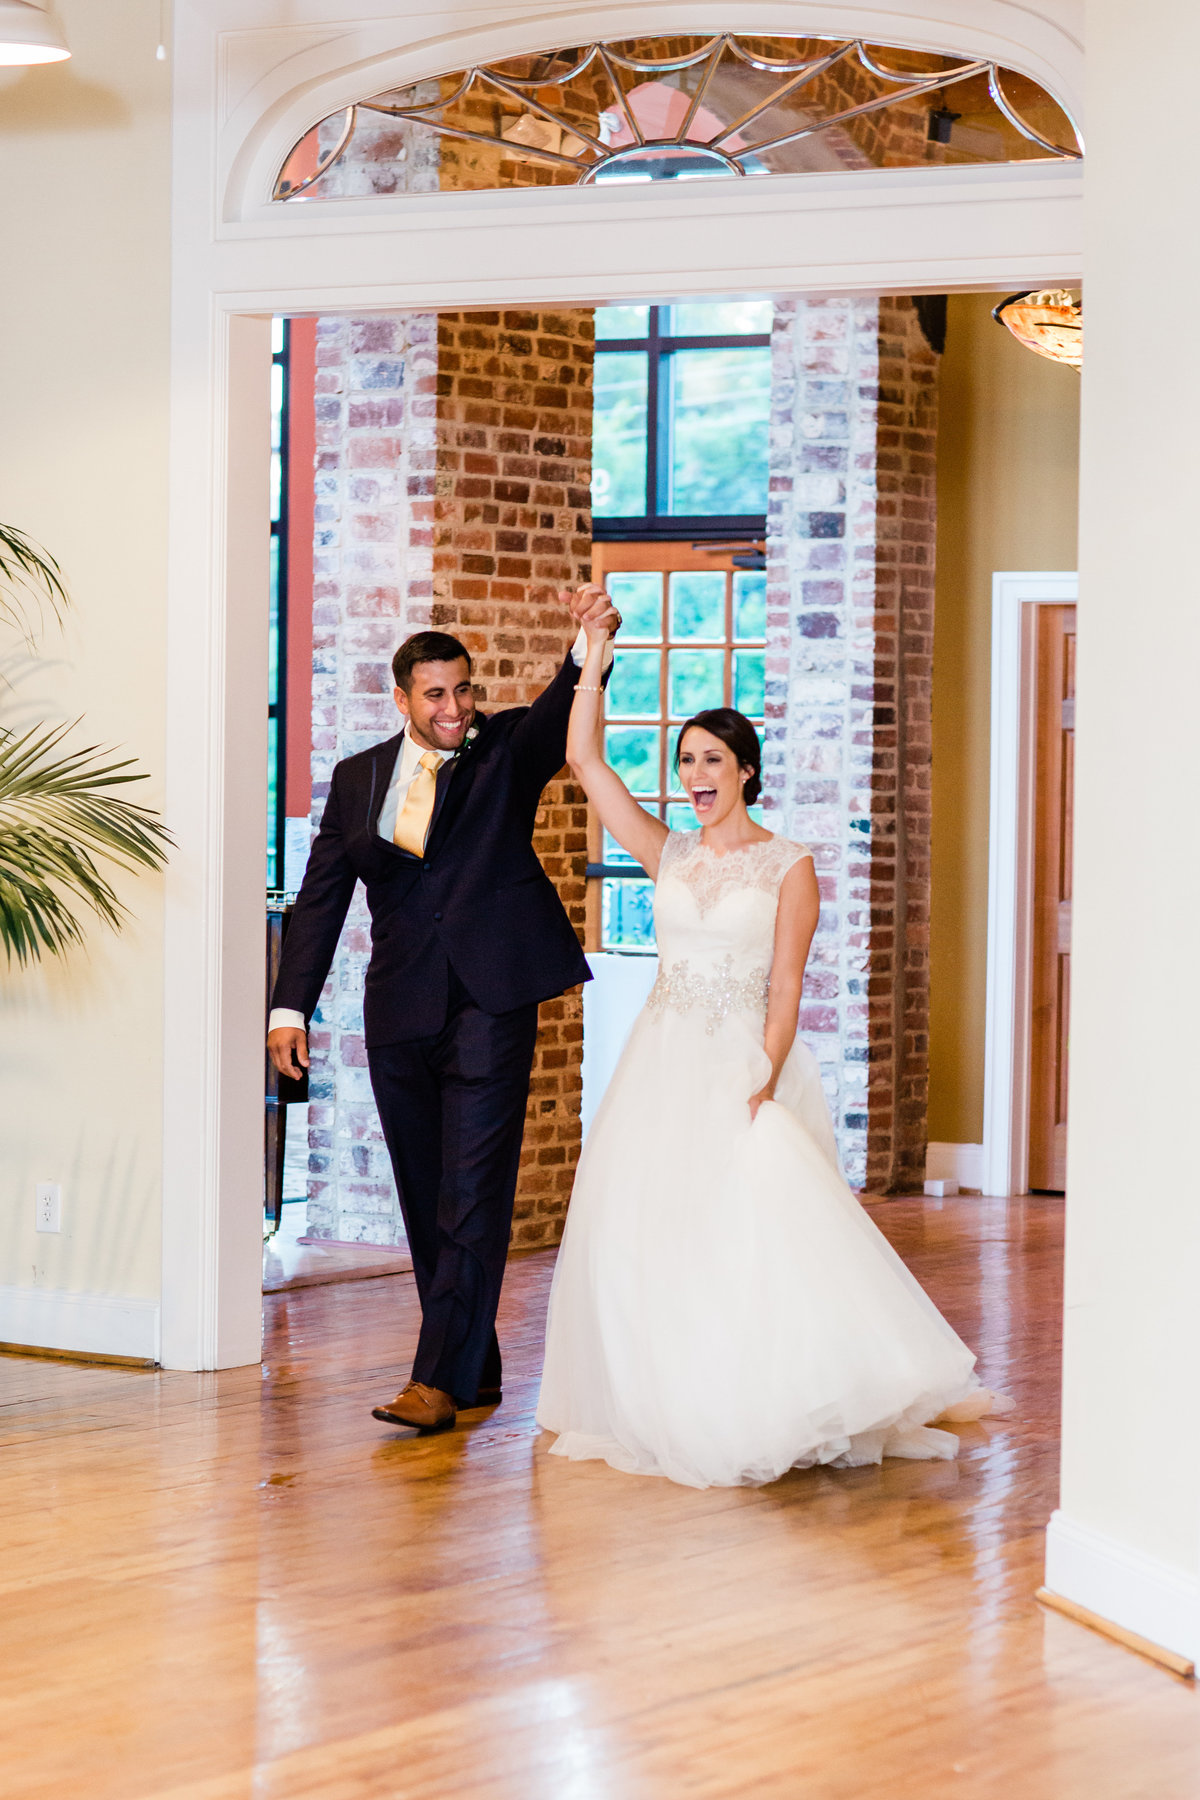 Danielle-Defayette-Photography-Revolution-Mill-Events-Wedding-Greensboro-NC-34